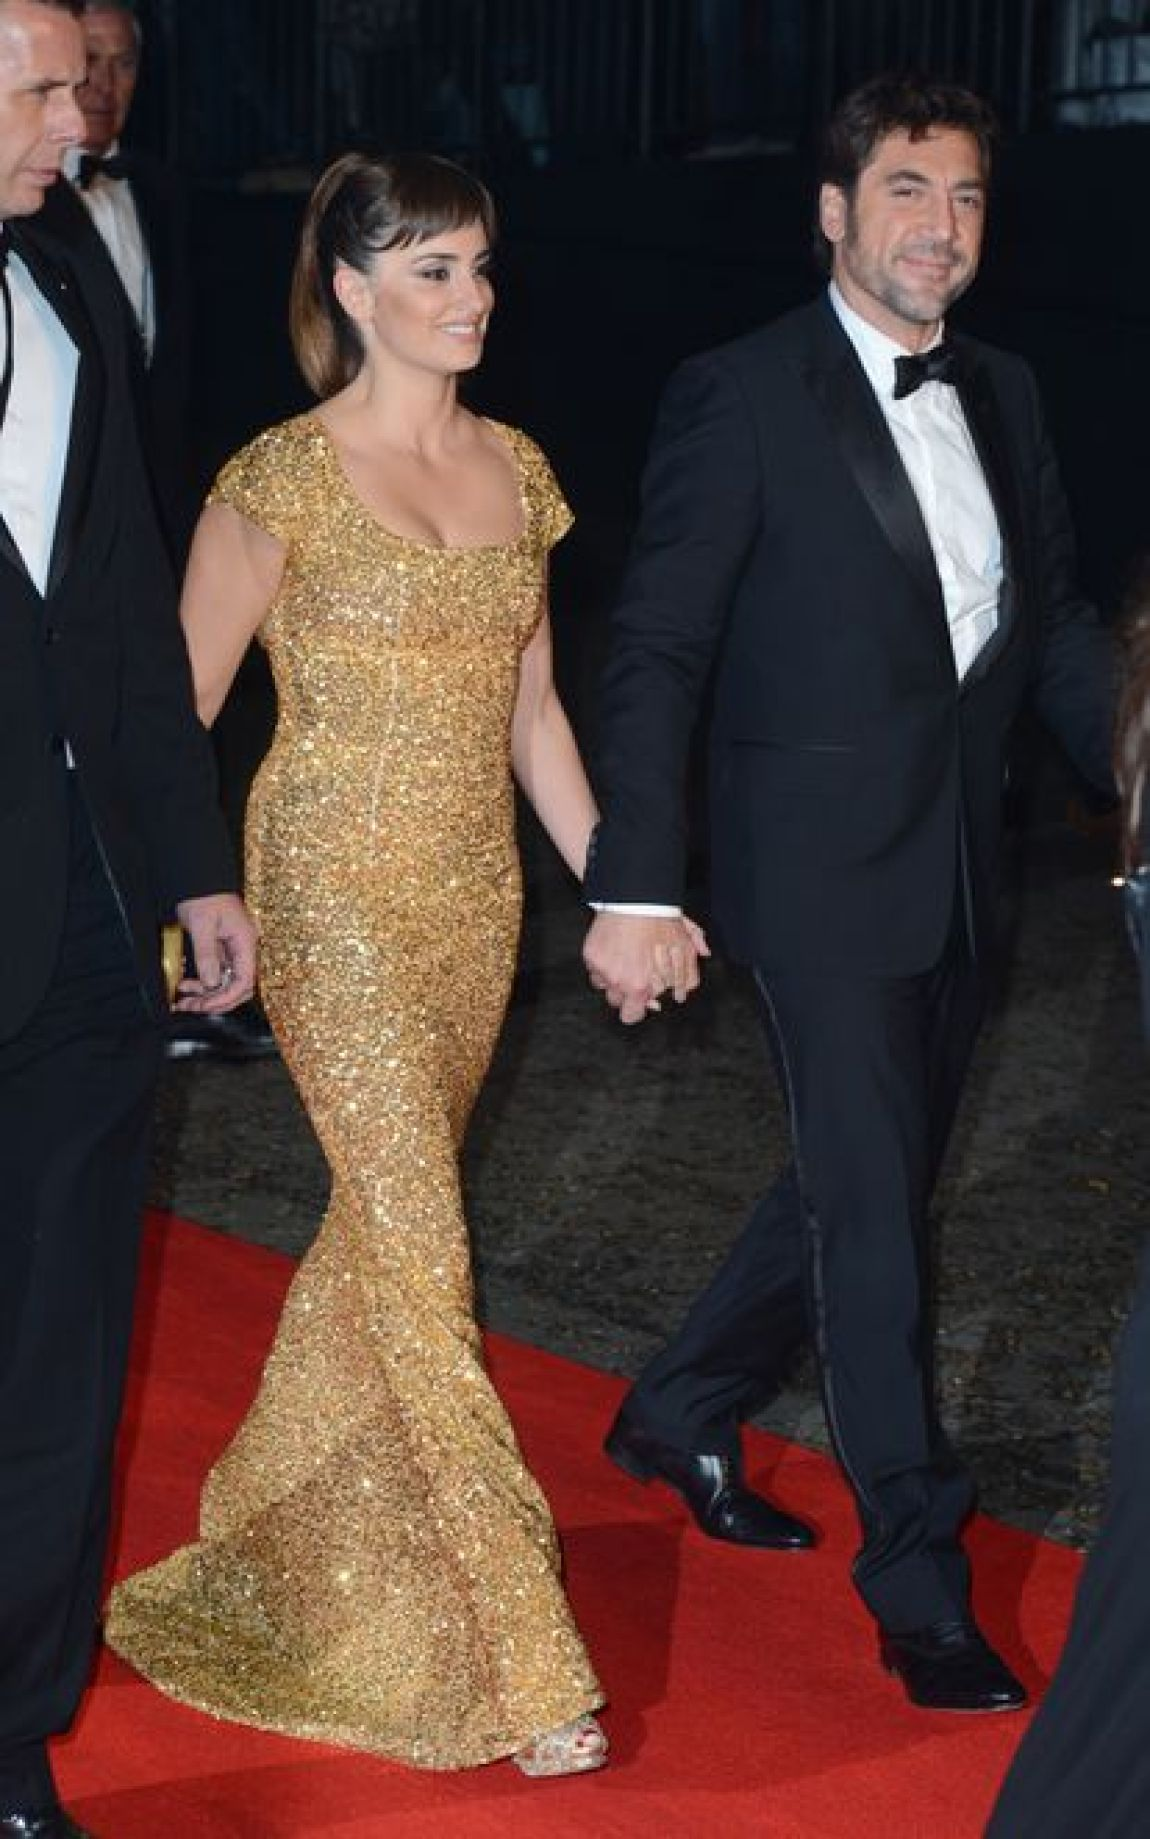 Javier Bardem and Penelope Cruz, at the 'Skyfall' premiere party in London.